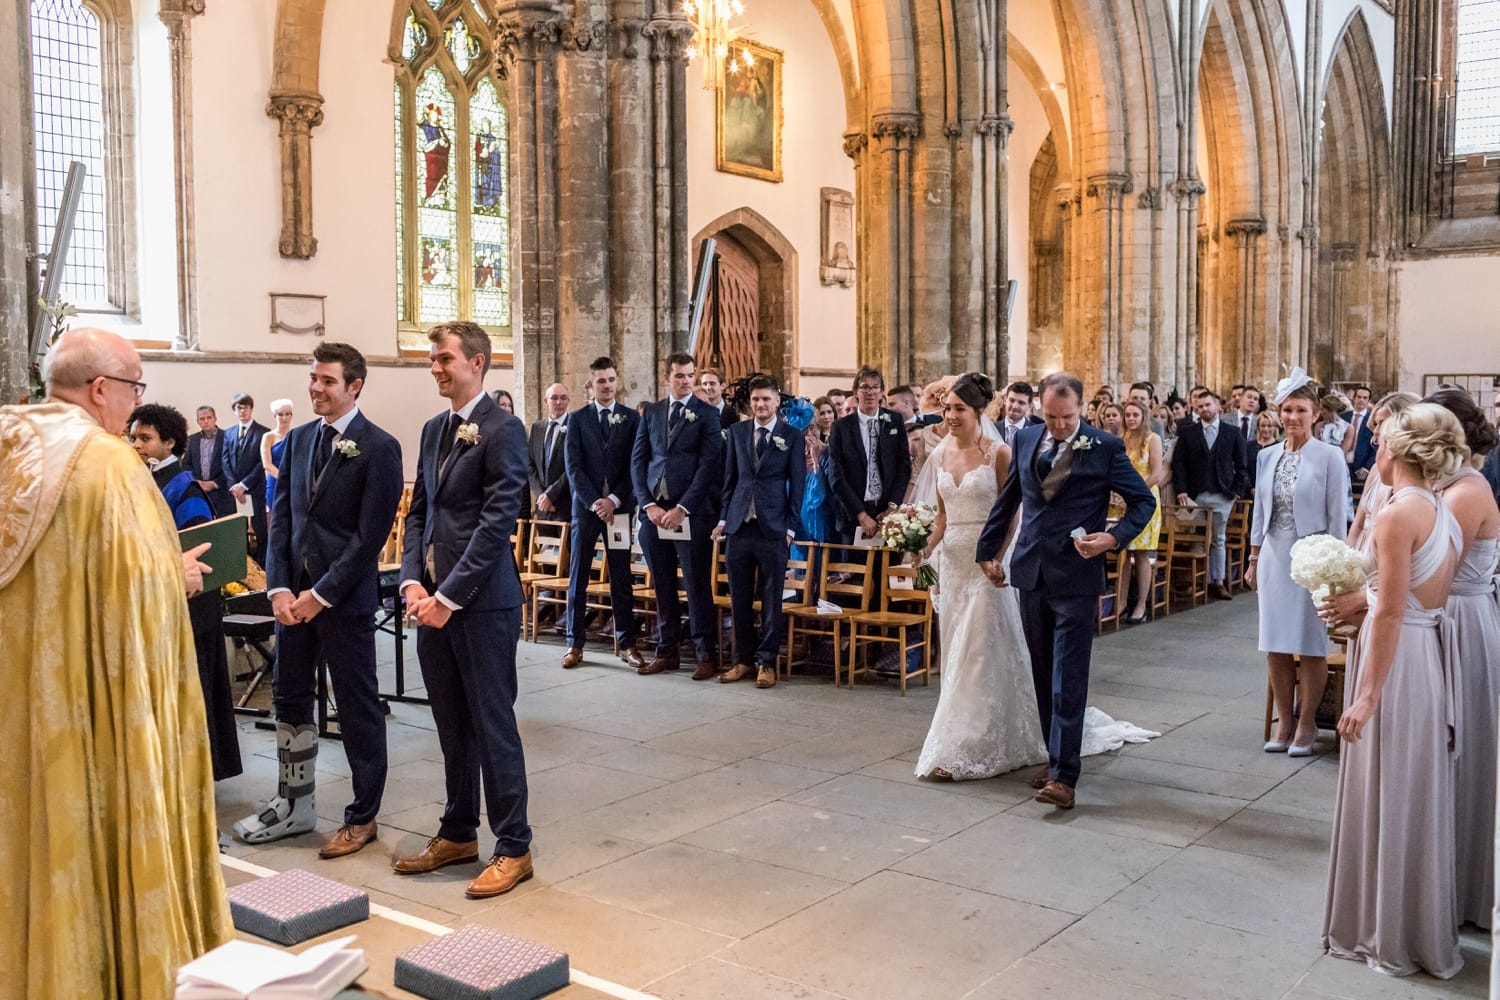 Matt Rowe waiting at alter for Dani King for their wedding at Llandaff Cathedral